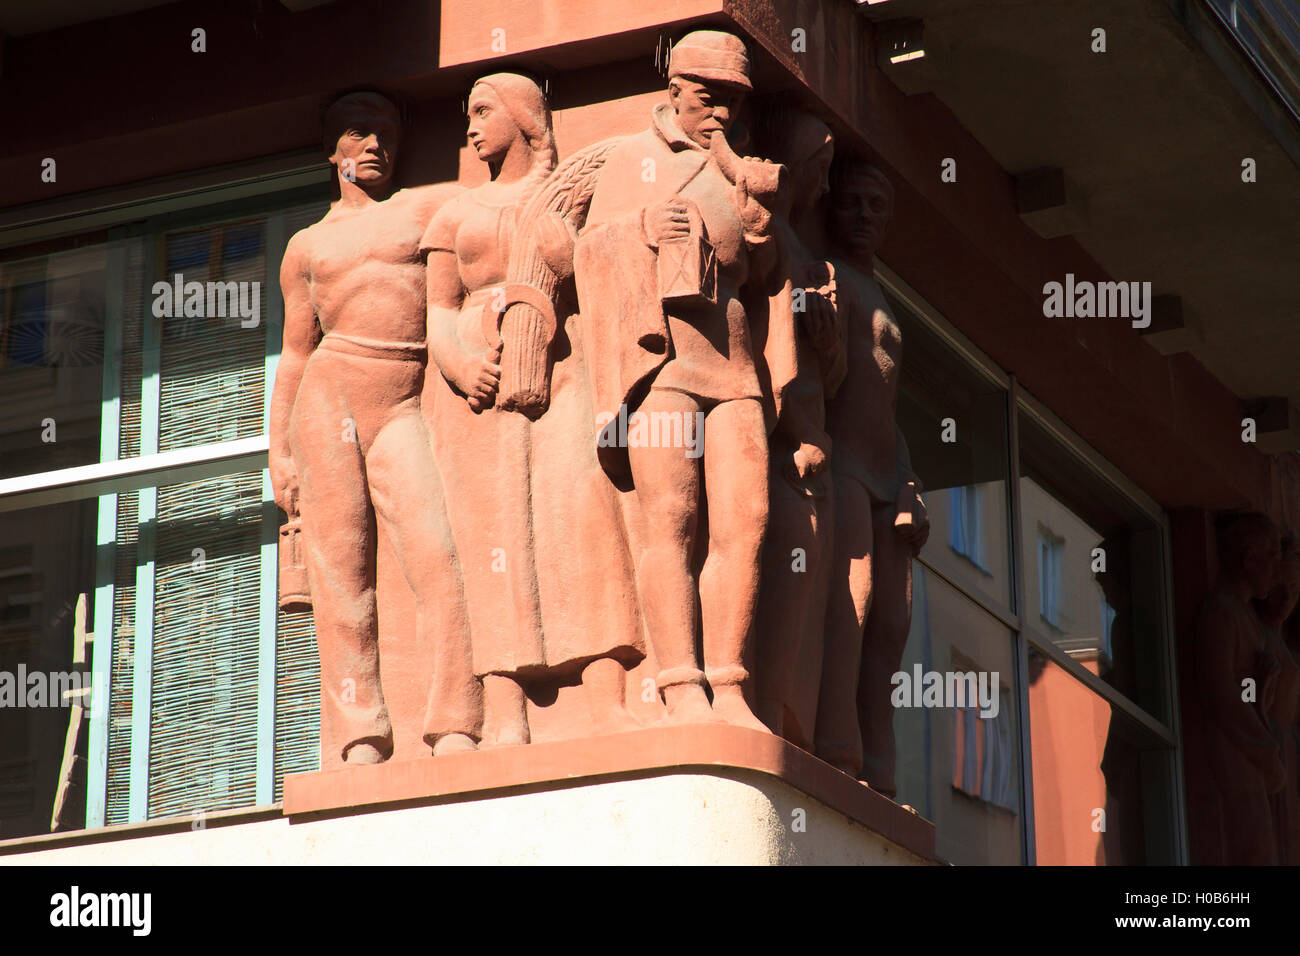 Decorative sculpture of socialist realism style of architecture. Detail of building facade in Ostrava, Czech Republic. - Stock Image